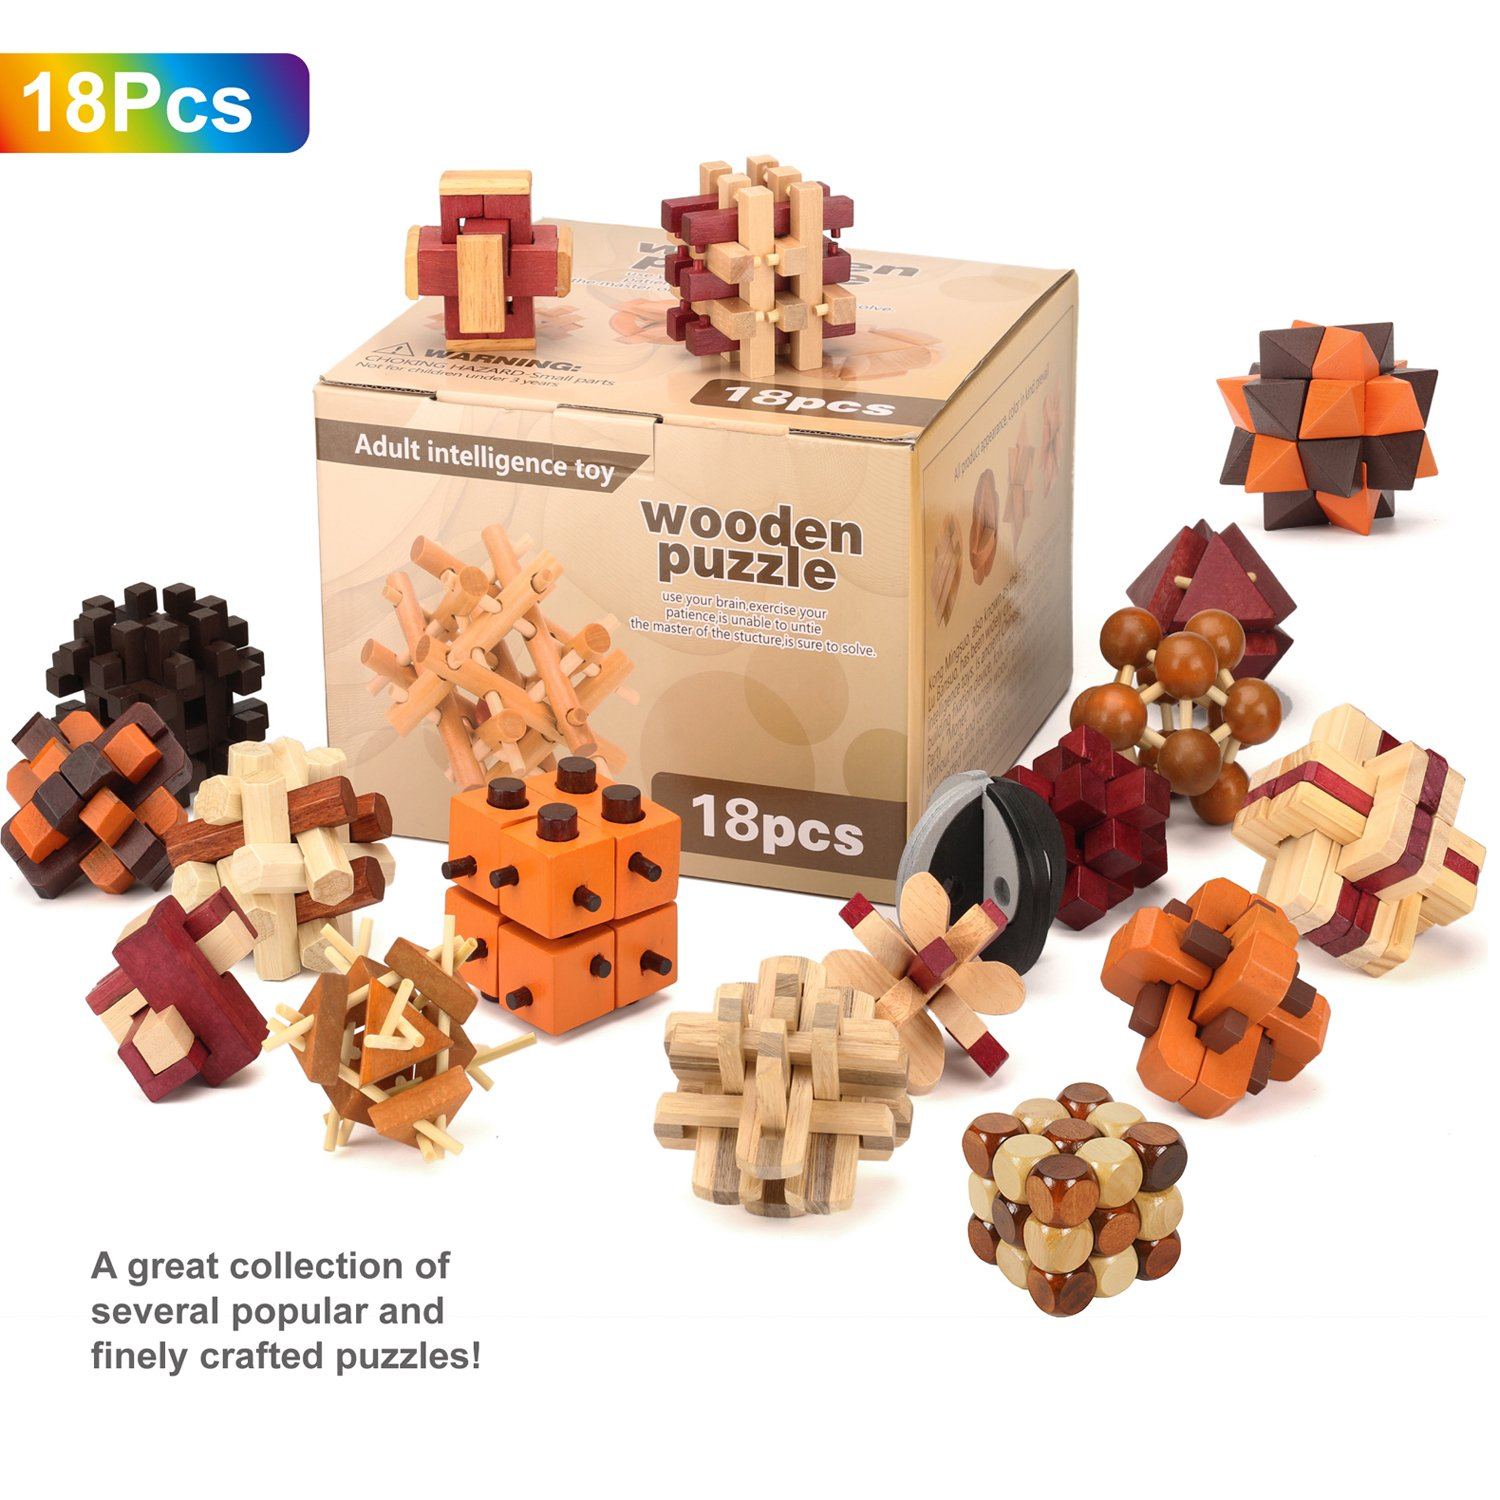 VolksRose 3D Wooden Cube Brain Teaser Puzzle 18 pcs, IQ Puzzles Great Educational Intelligence Jigsaw Puzzles Toys for Adult Children and Student - Challenge Your Logical Thinking U5 by VolksRose